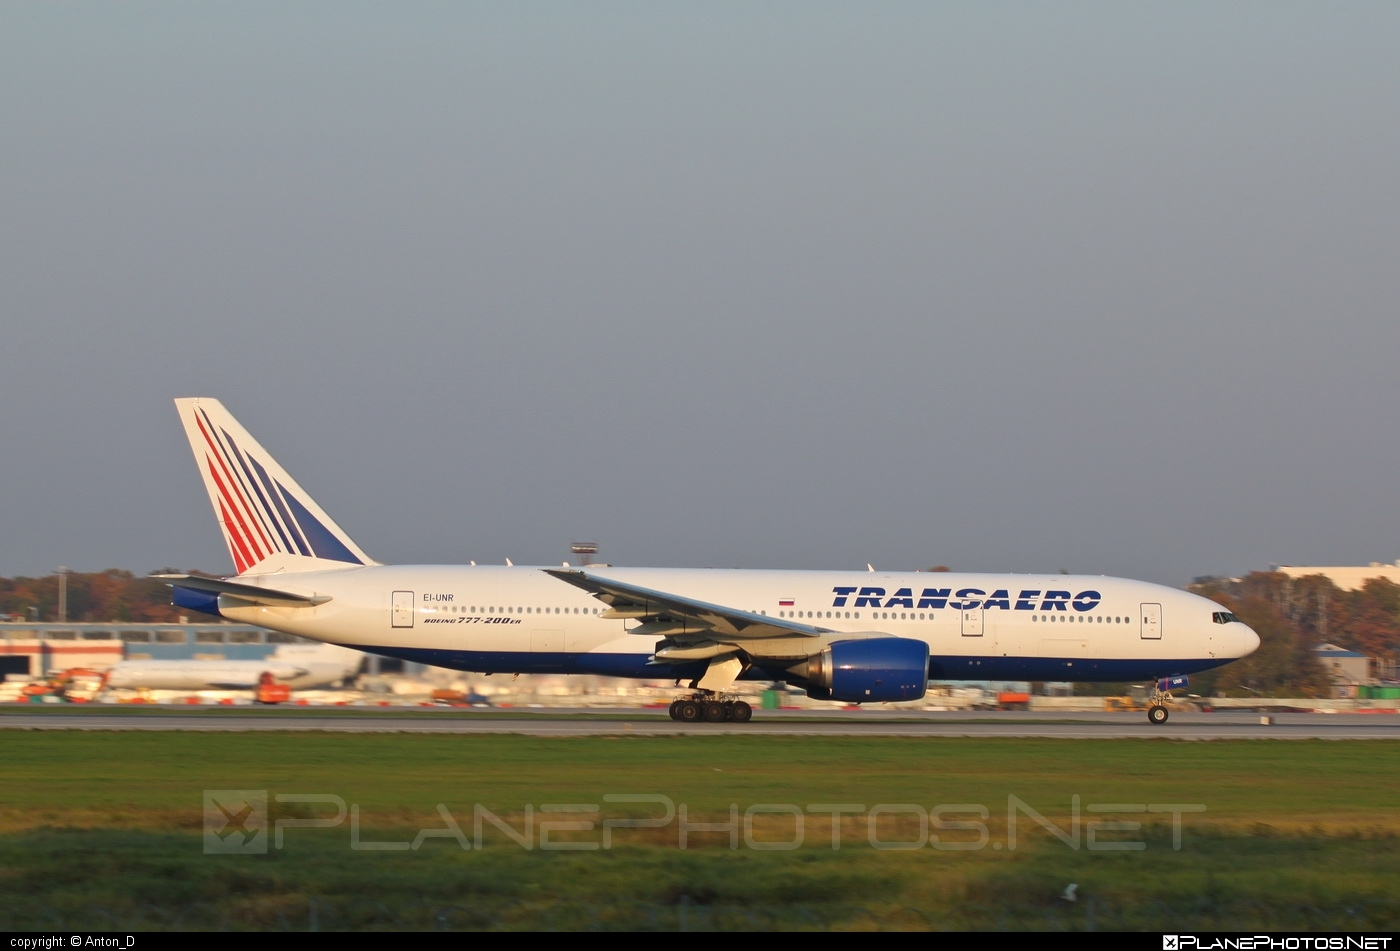 Boeing 777-200ER - EI-UNR operated by Transaero Airlines #b777 #b777er #boeing #boeing777 #transaero #transaeroairlines #tripleseven